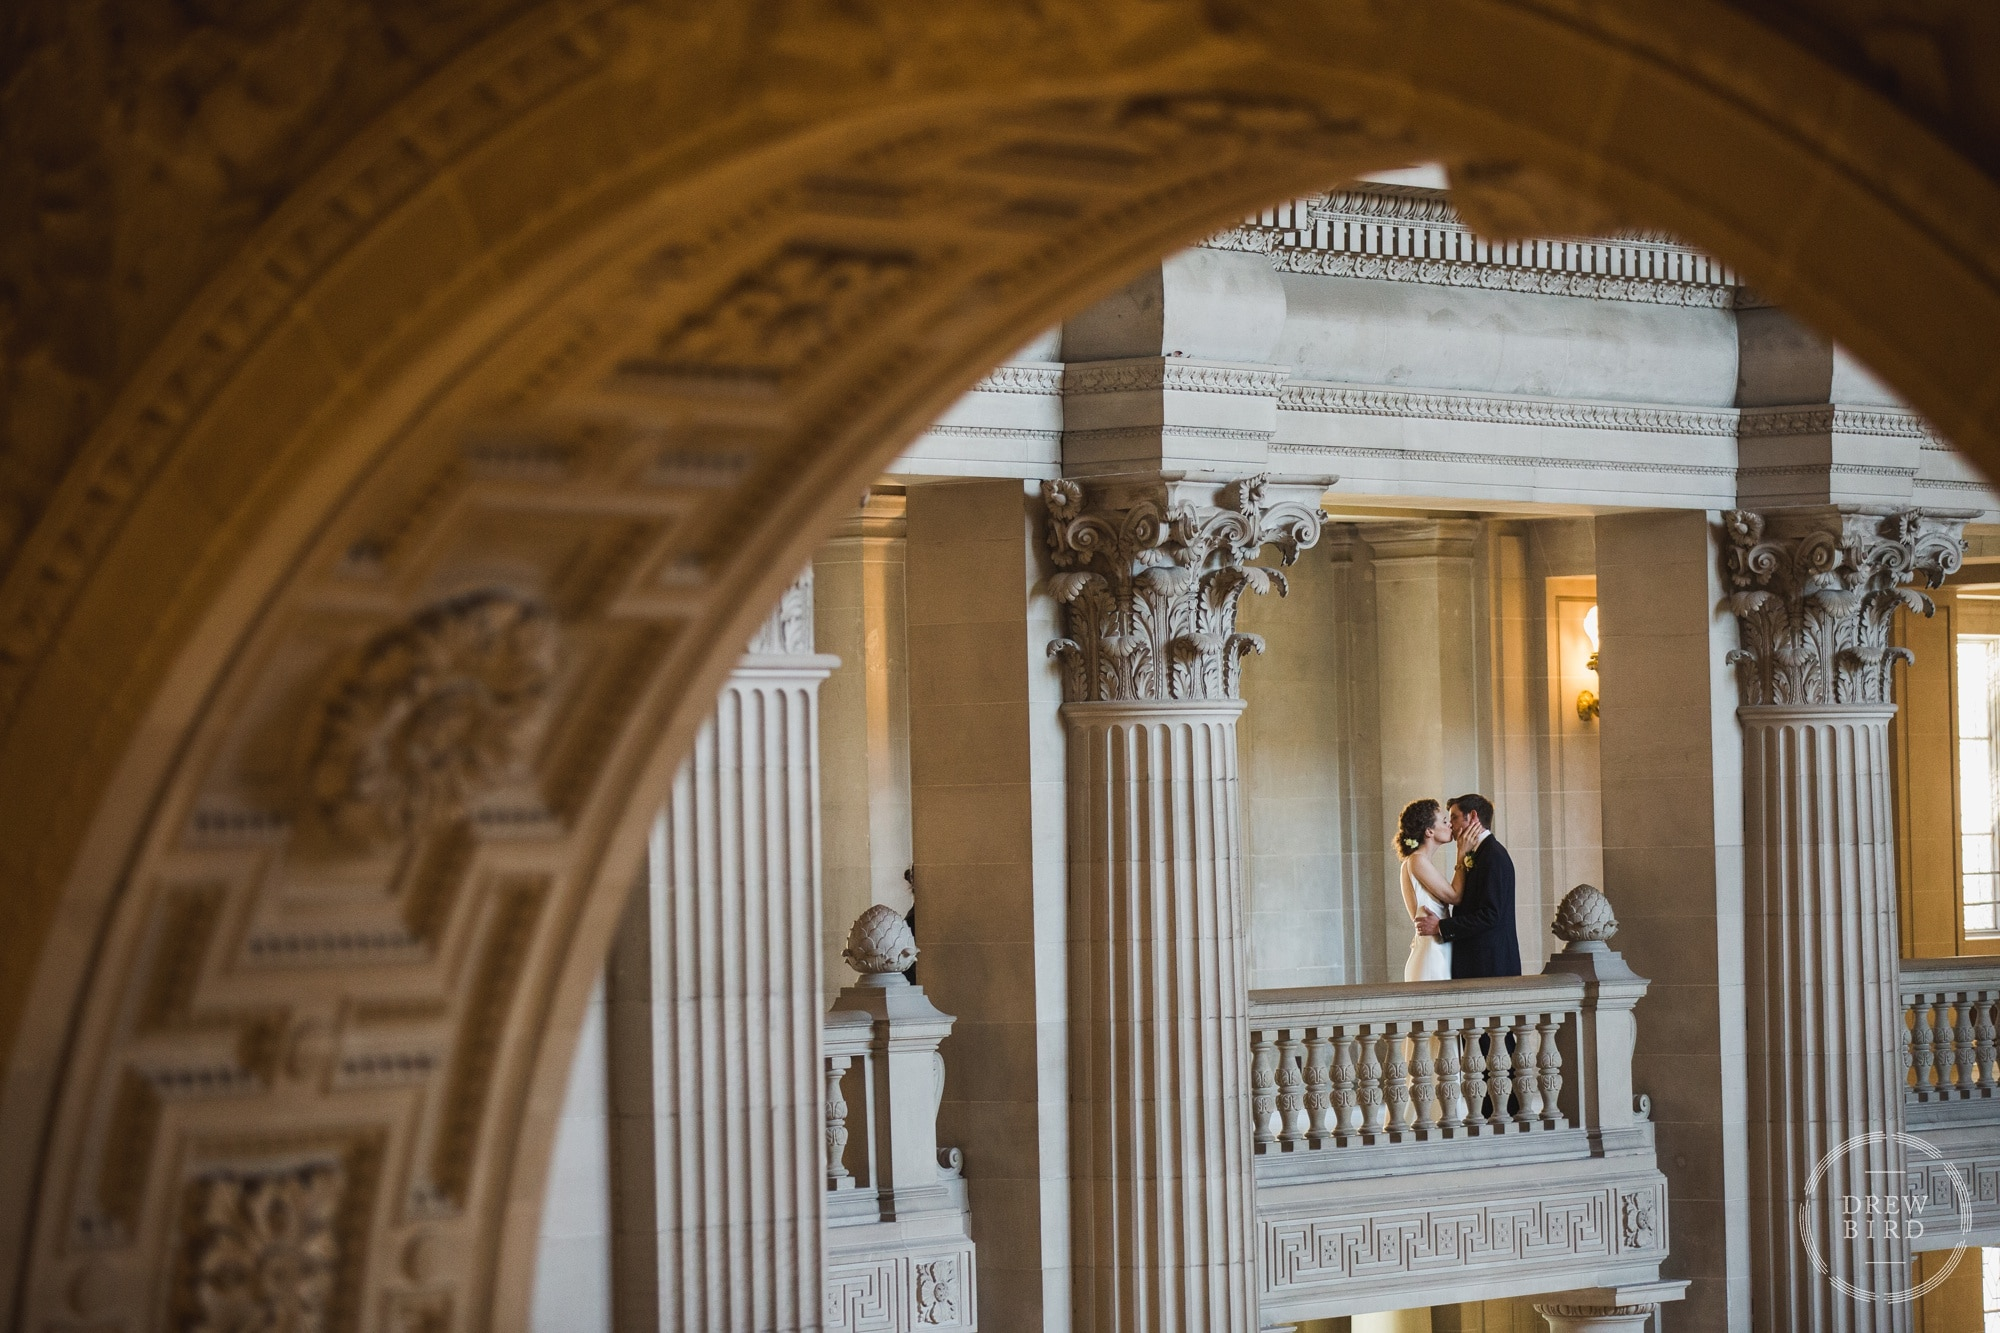 Bride and groom wedding portrait with arches architecture. San Francisco City Hall wedding photographer Drew Bird.